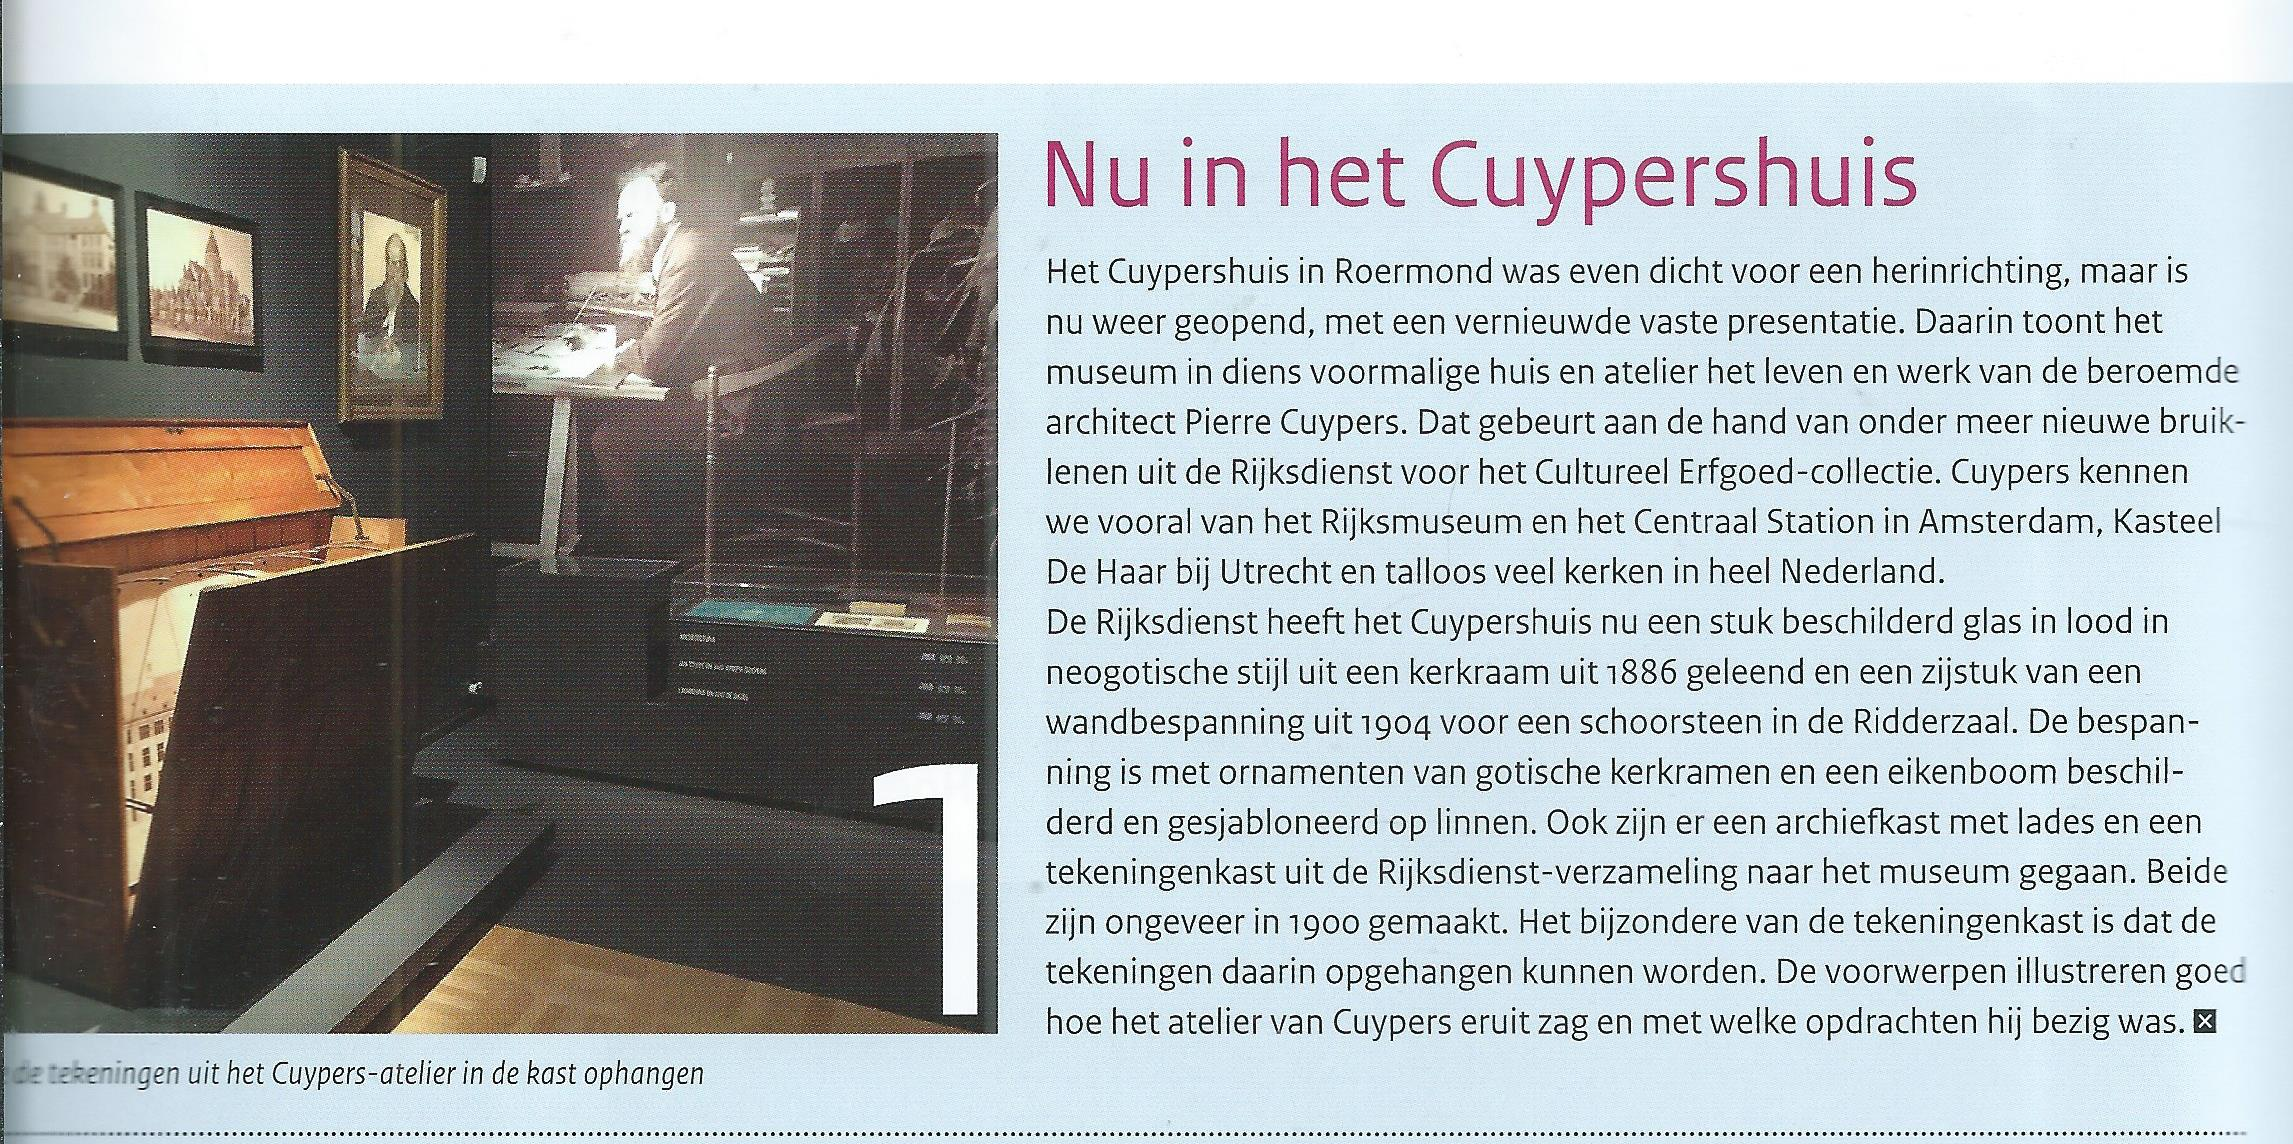 Cuypers1